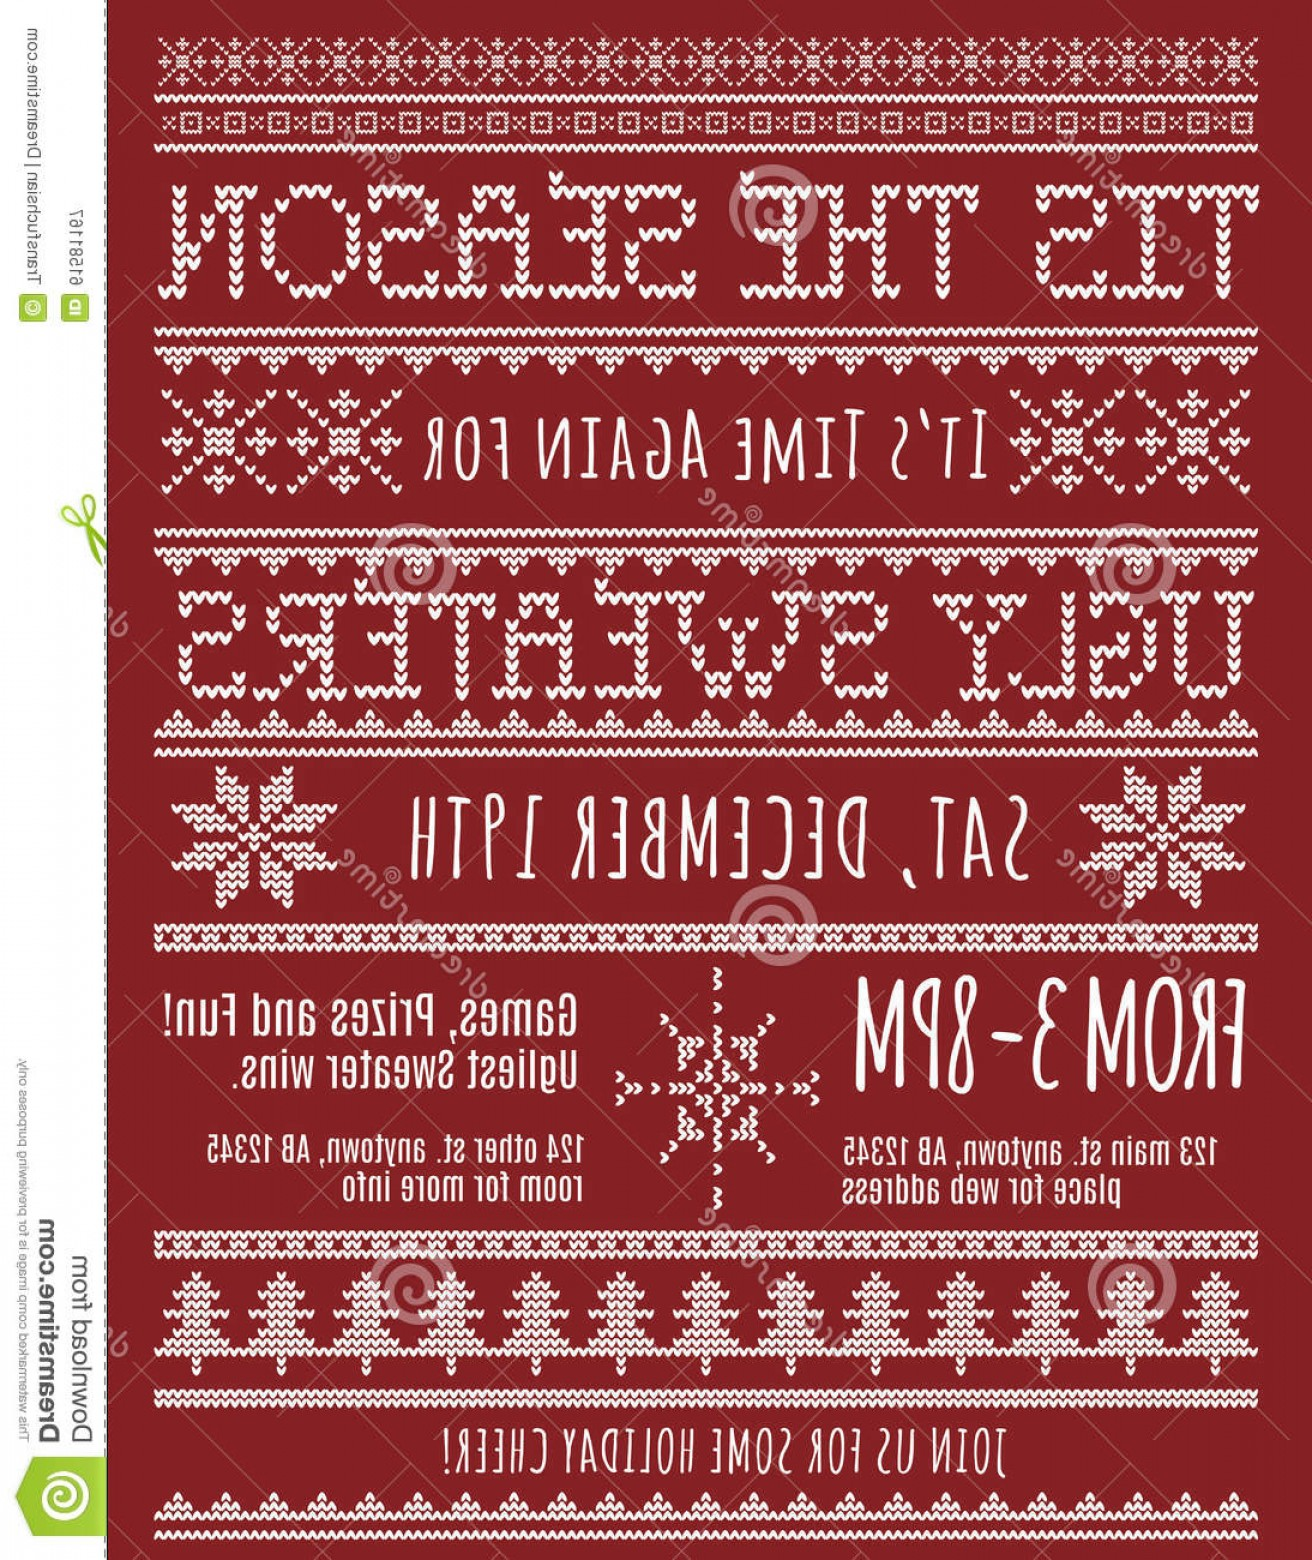 Christmas Sweater Design Vector: Stock Illustration Ugly Christmas Sweater Party Invitation Template Knitted Design Effect Image